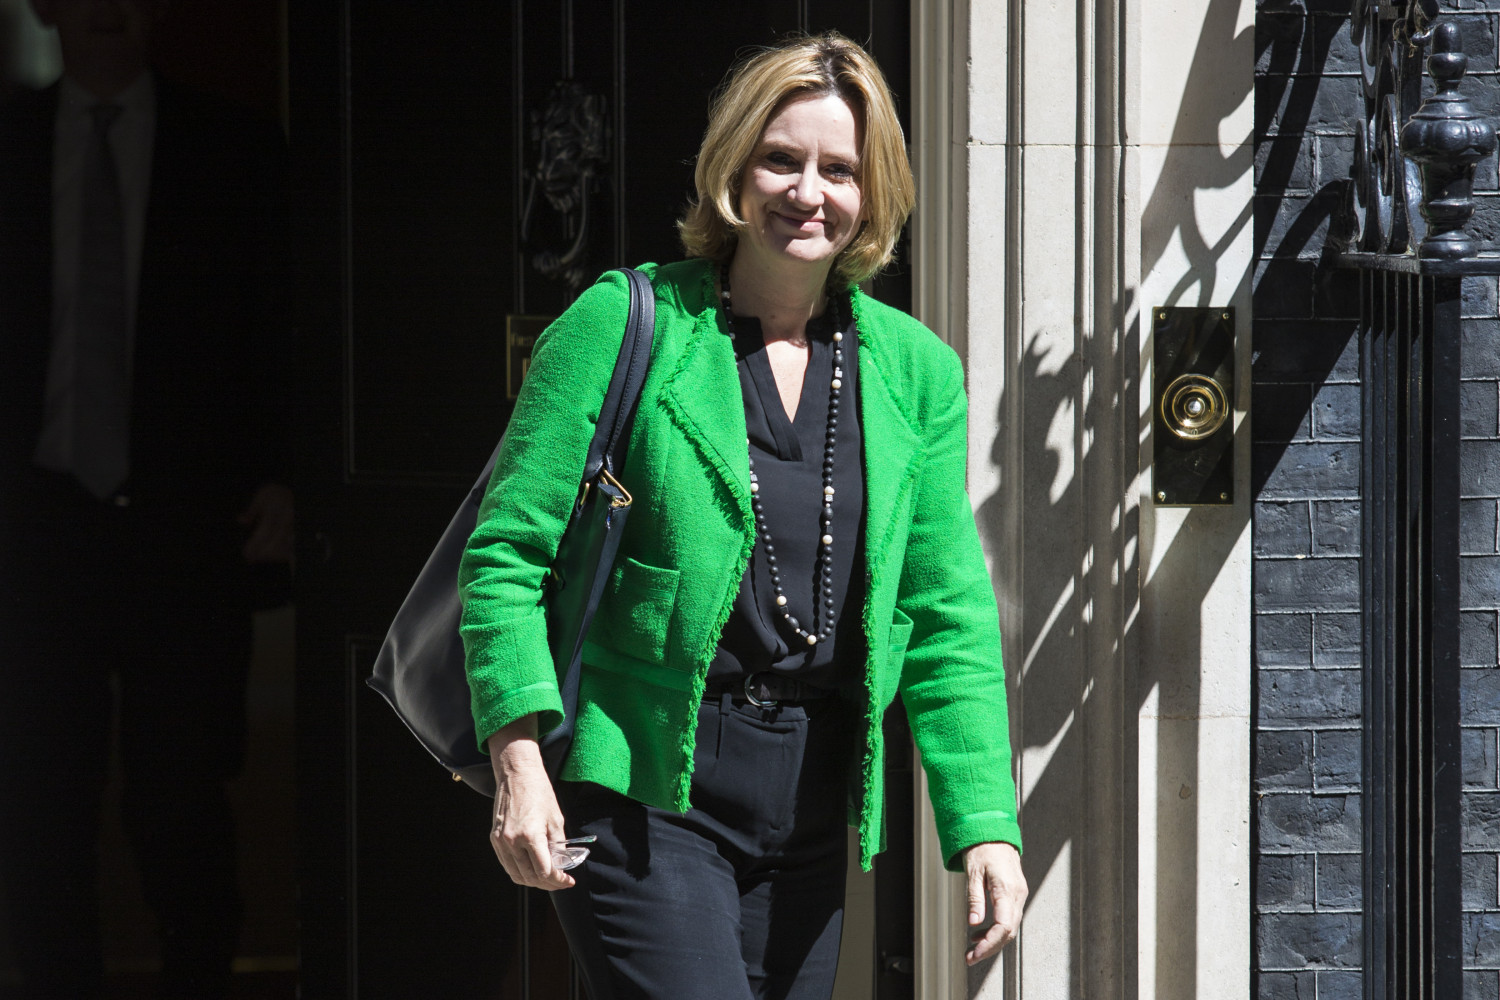 Home Secretary Amber Rudd (Getty Images)